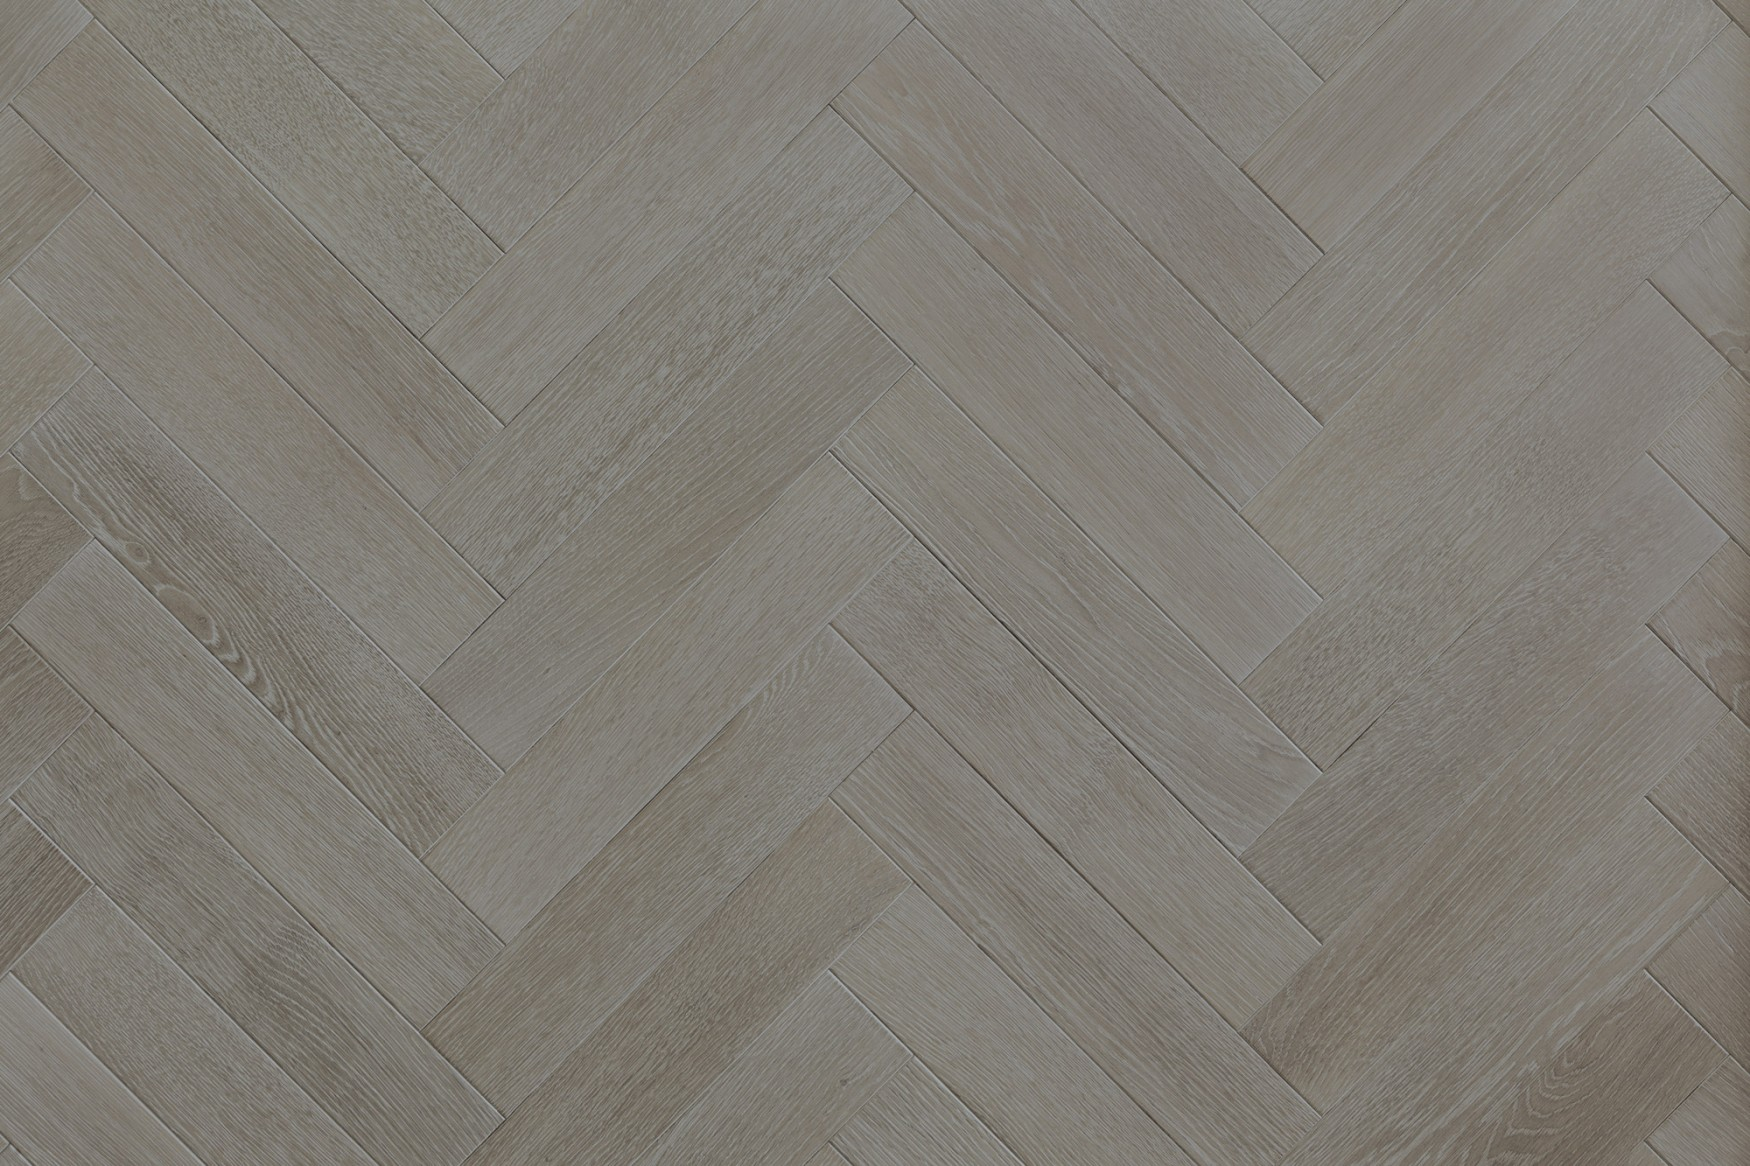 Element7_AshGreyOak_Herringbone_Waxed_AJ_562_272-copy2